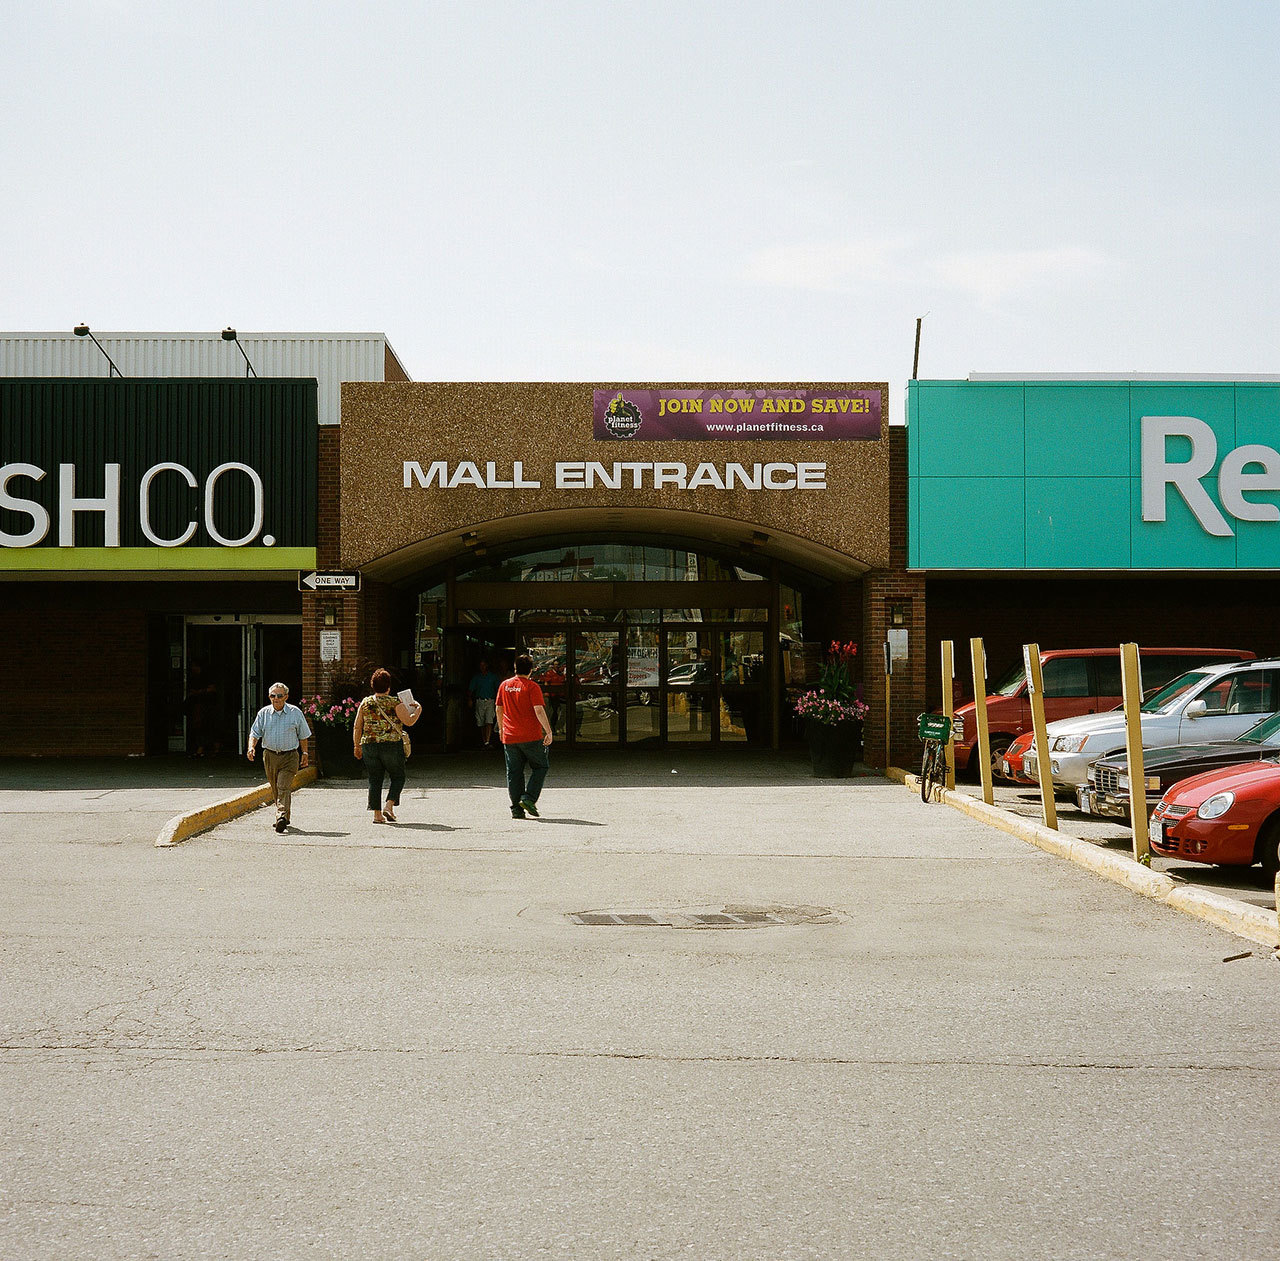 Galleria Mall: The Eerie, Old-Fashioned Joys Of Toronto's Galleria Mall